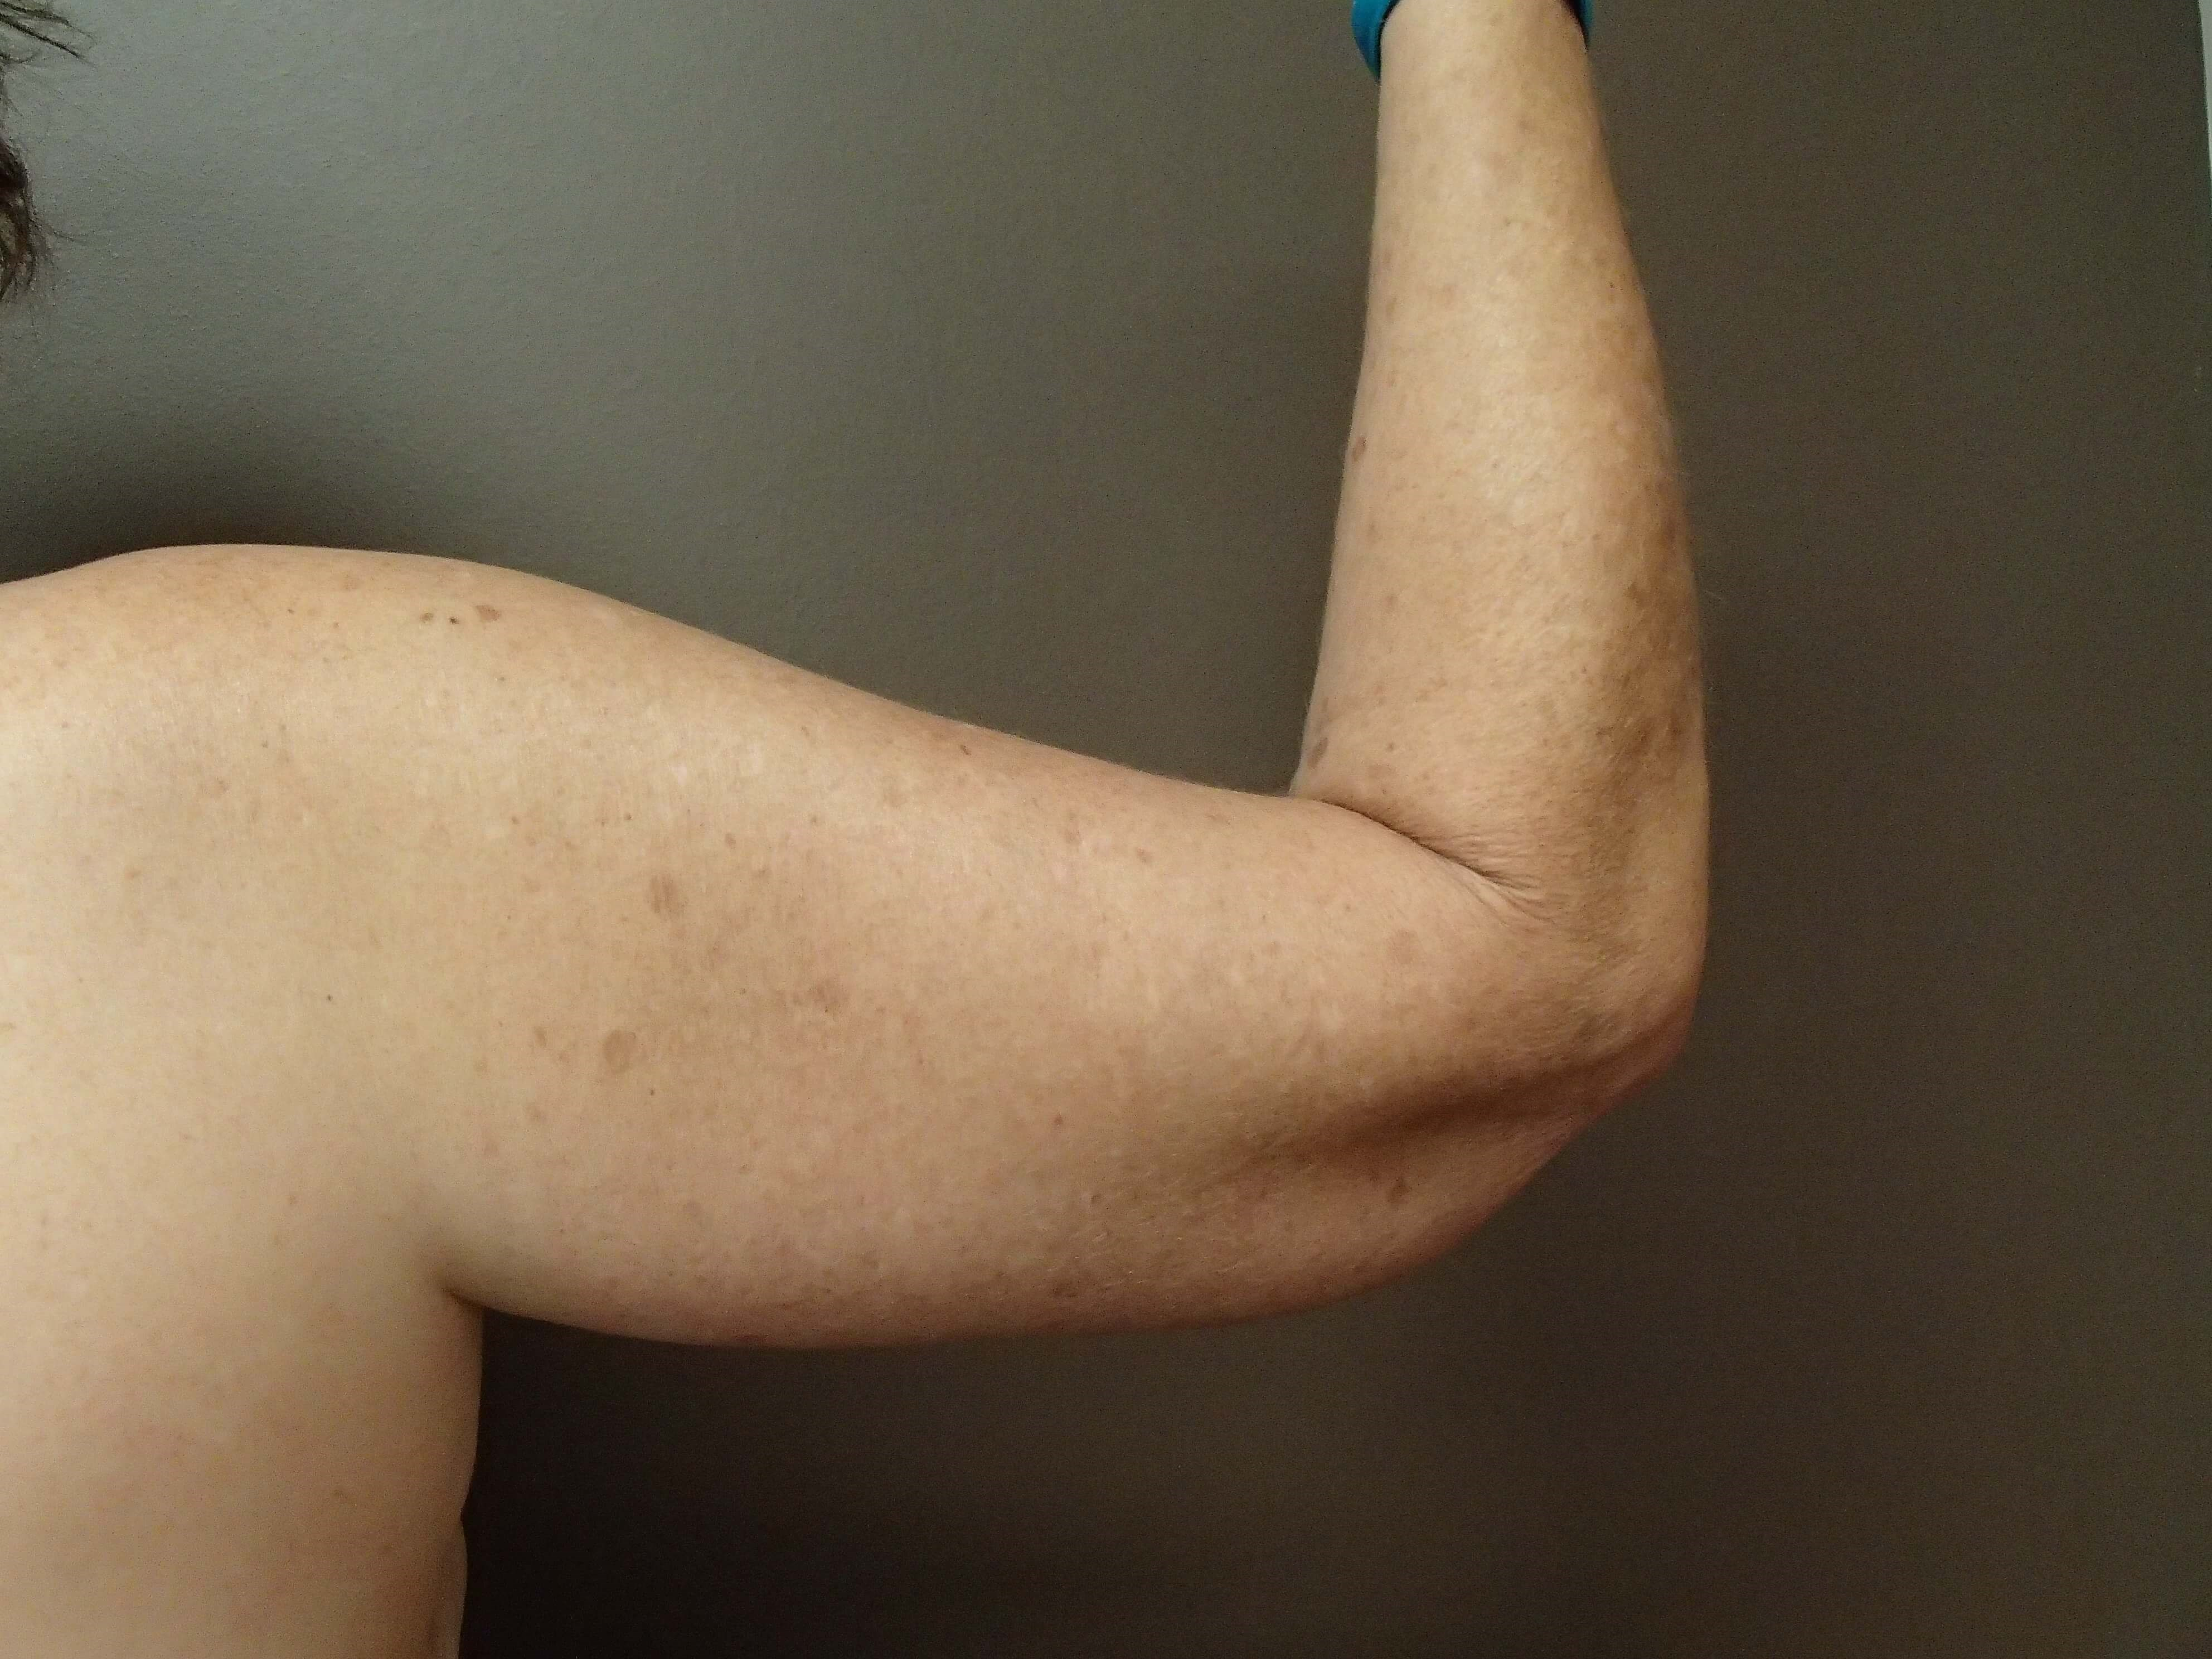 Brachioplasty (Arm Lift) After